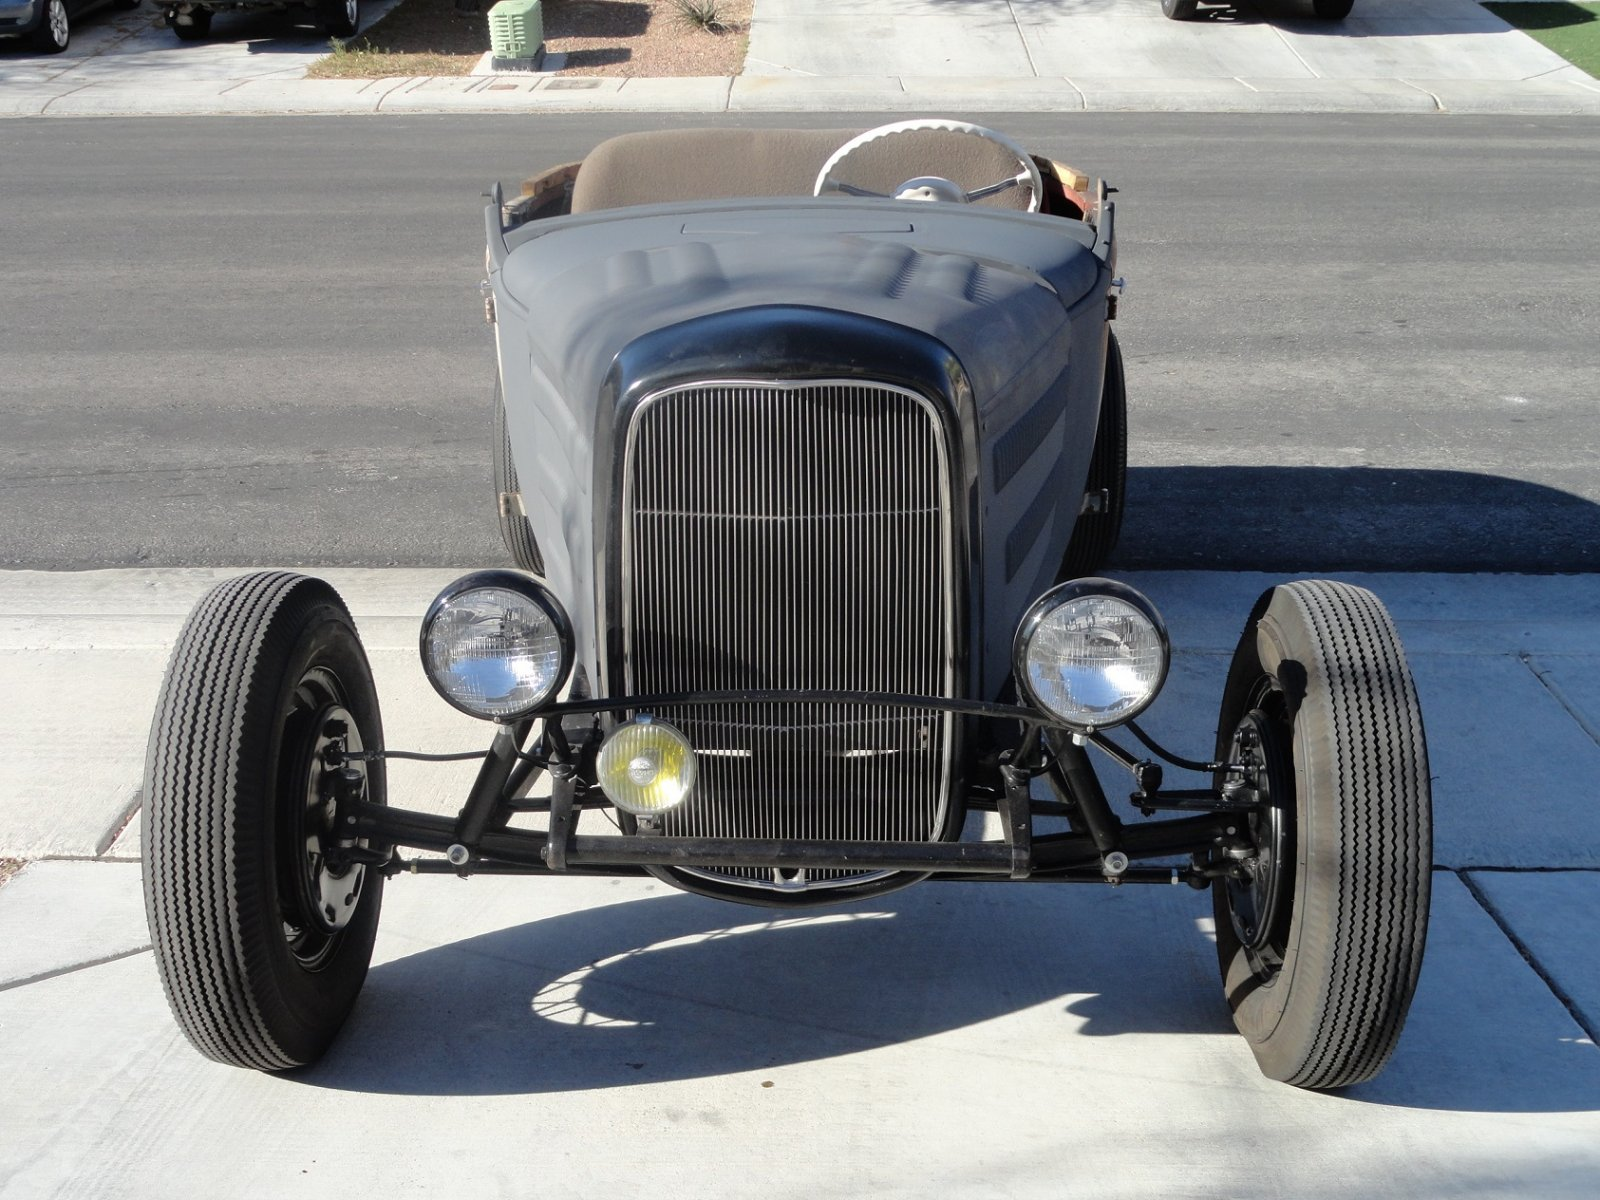 1930 channeled chopped ford roadster, hot rod   The H.A.M.B.